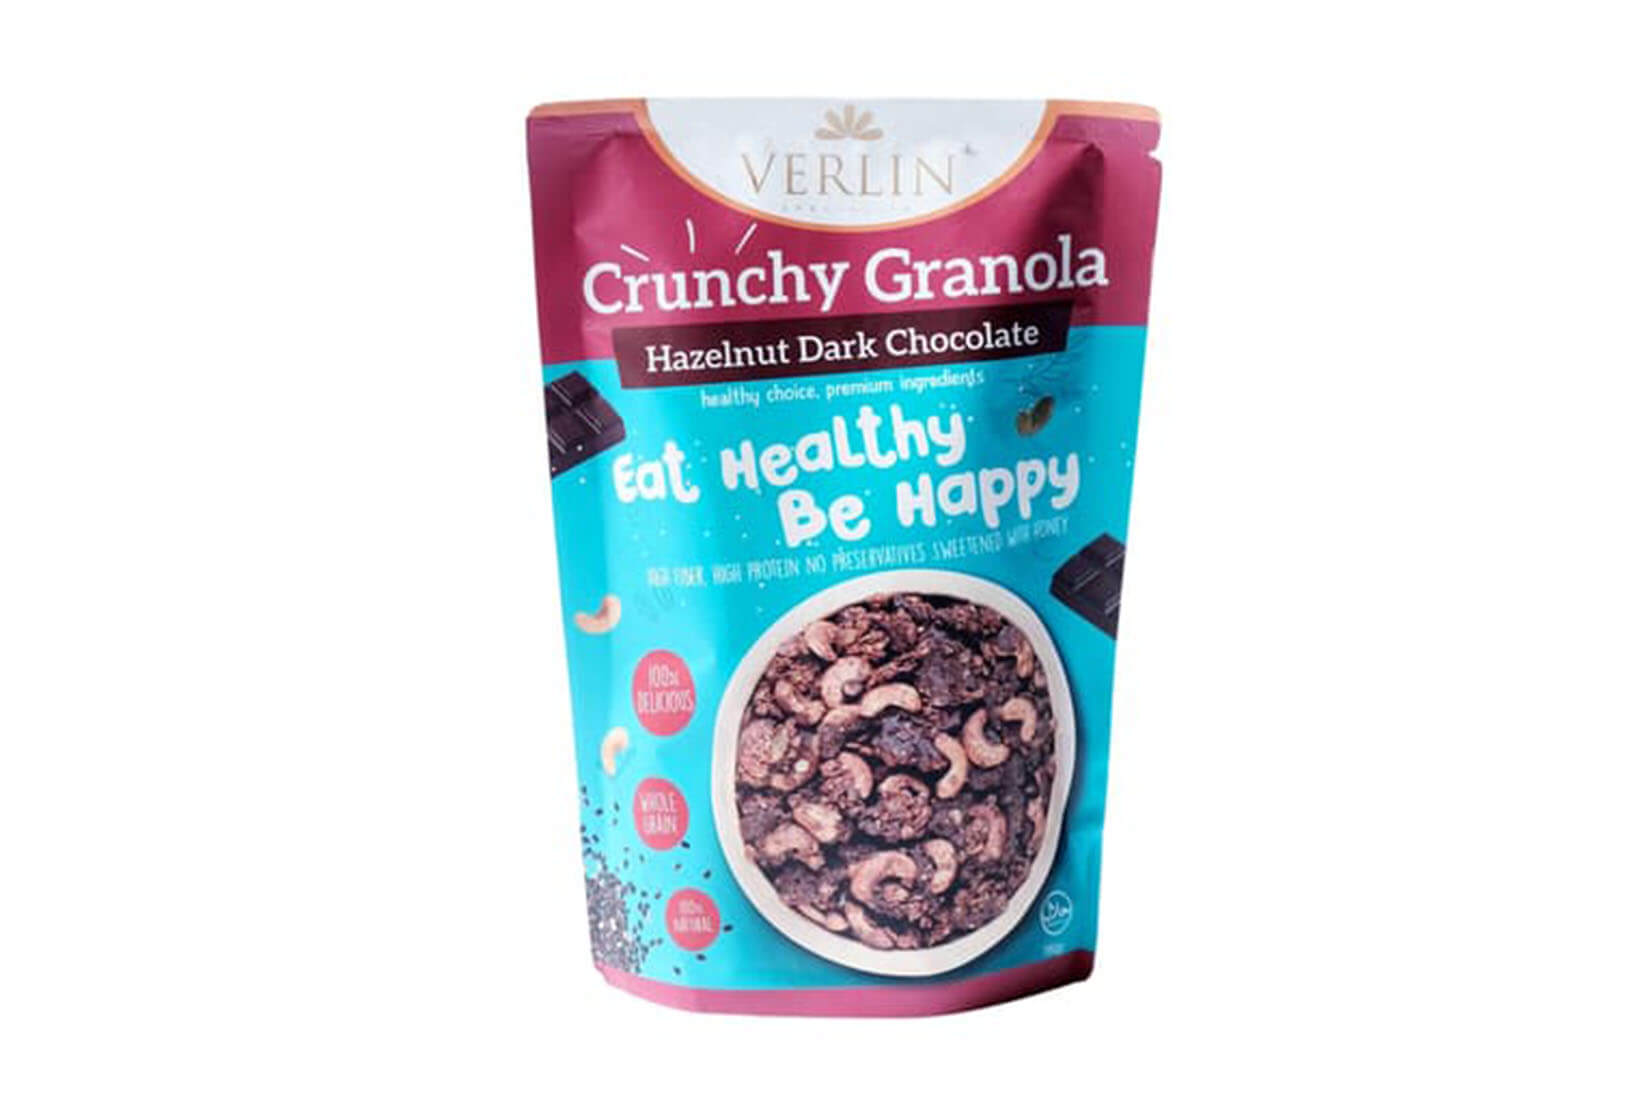 Crunchy Granola Hazelnut Dark Chocolate Verlin